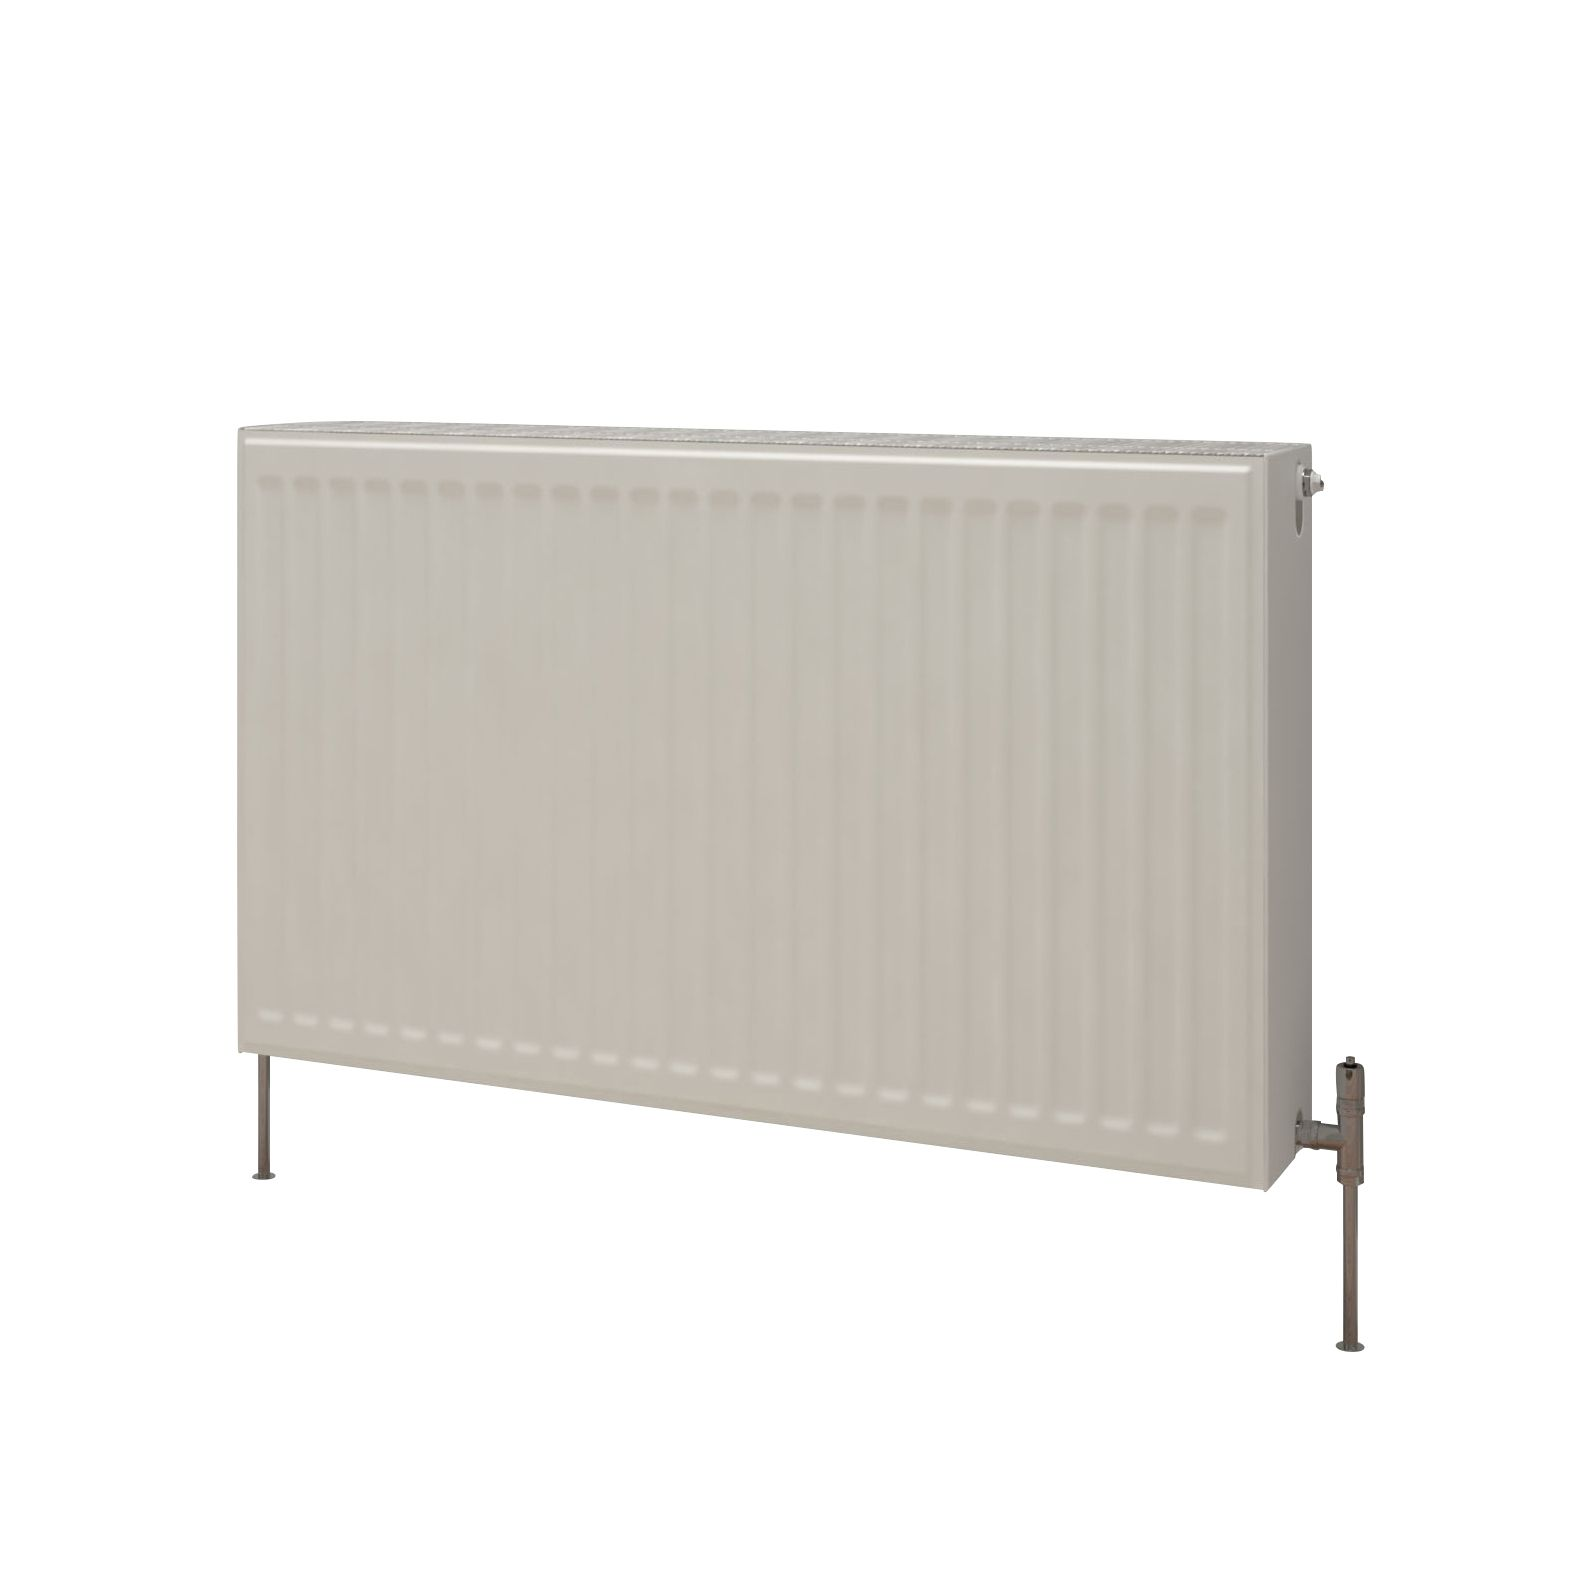 Kudox Premium Single Radiator Gloss (H)700 mm (W)1100